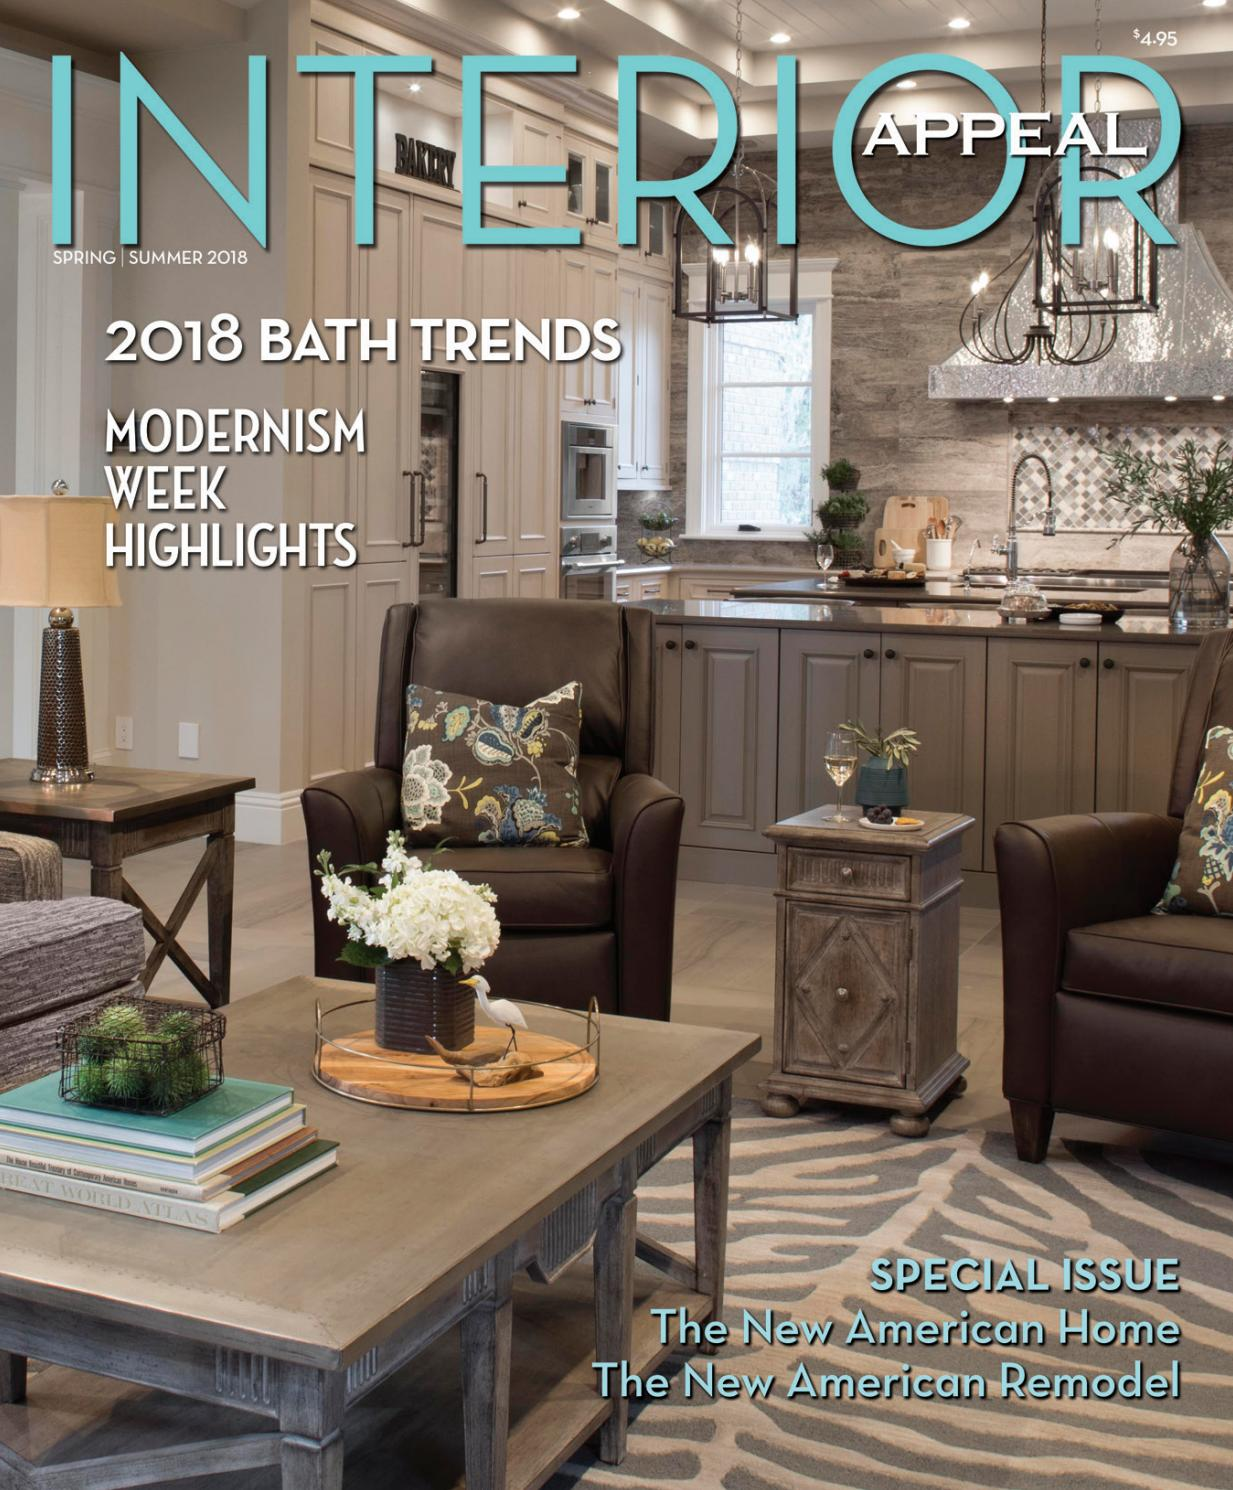 Interior appeal spring summer 2018 by orange appeal issuu